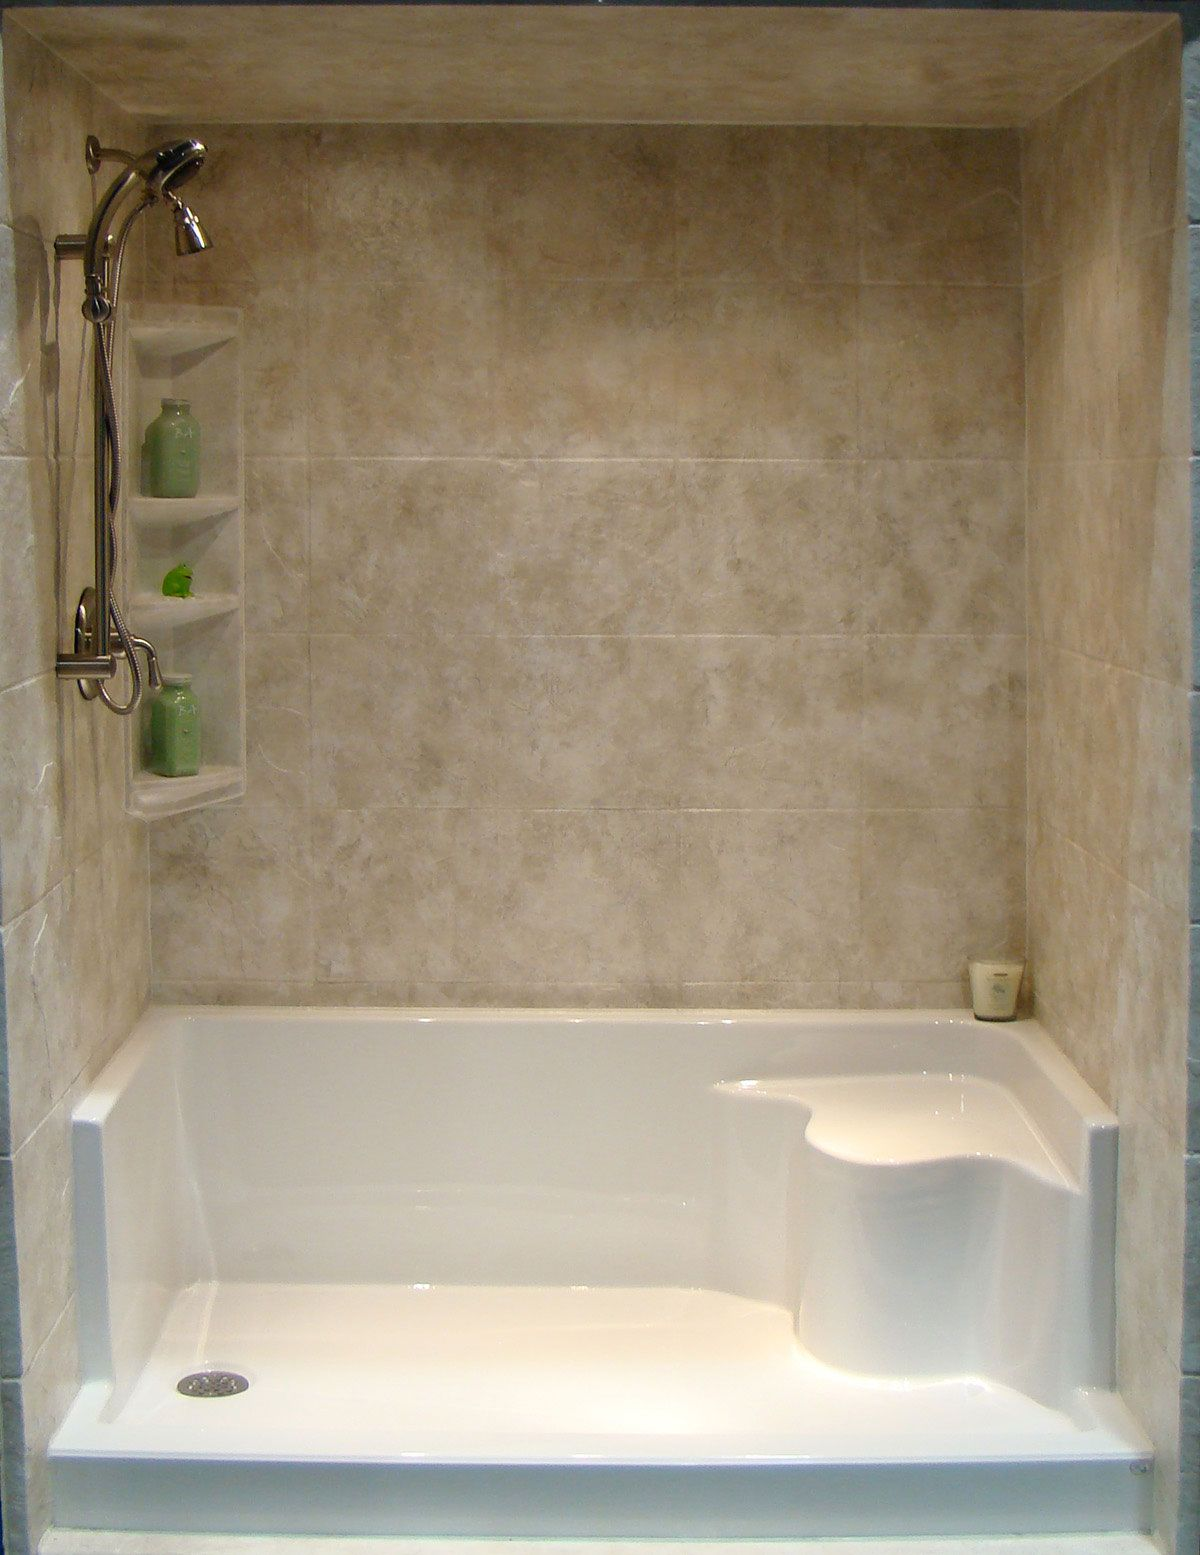 Tub An Shower Conversion Ideas Bathtub Refinishing Tub To Shower - Bathroom remodel changing tub to shower